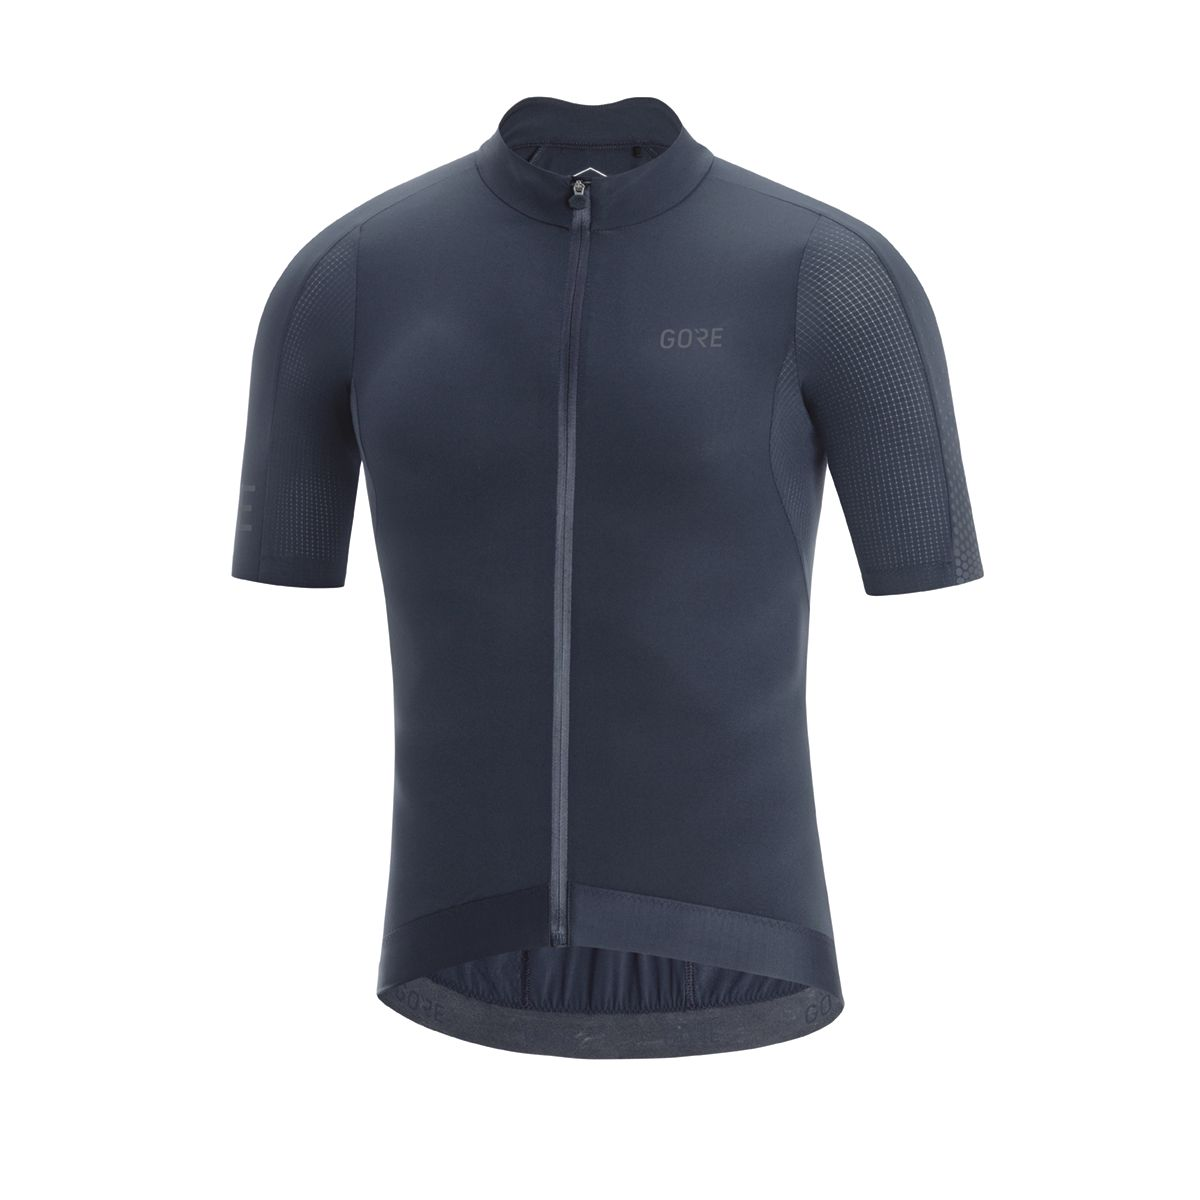 C7 CANCELLARA RACE JERSEY cycling jersey